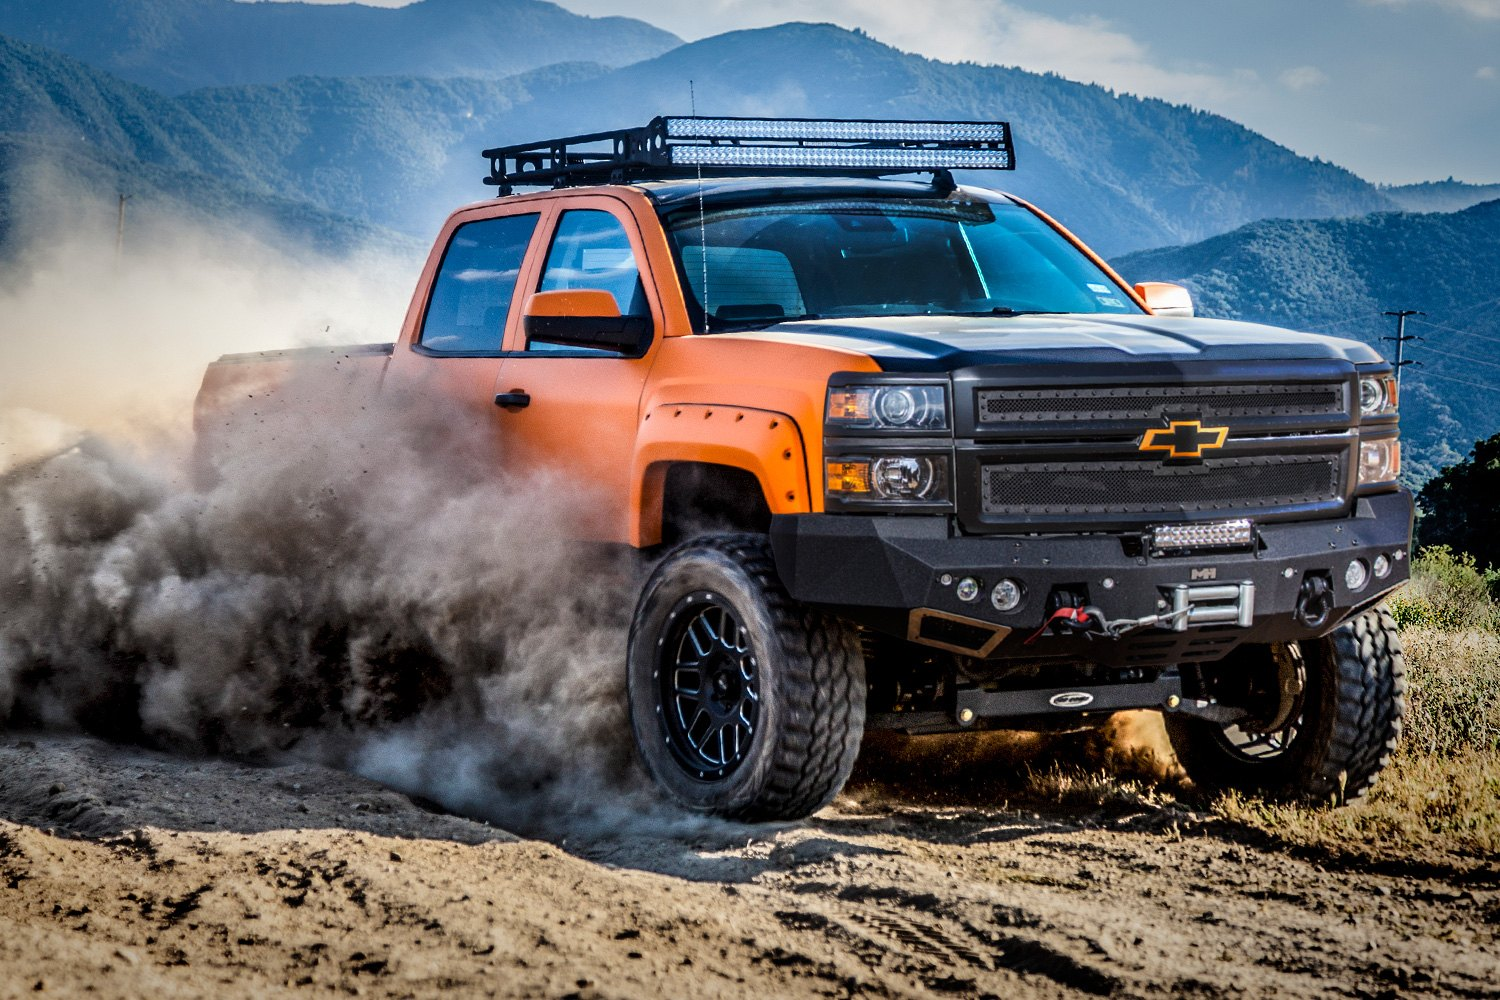 6 Inch Lift Kit For Chevy Silverado 1500 >> 2014 To 2017 Chevy Silverado Gm 1500 6 Lift Kit With Pro Runner Shocks